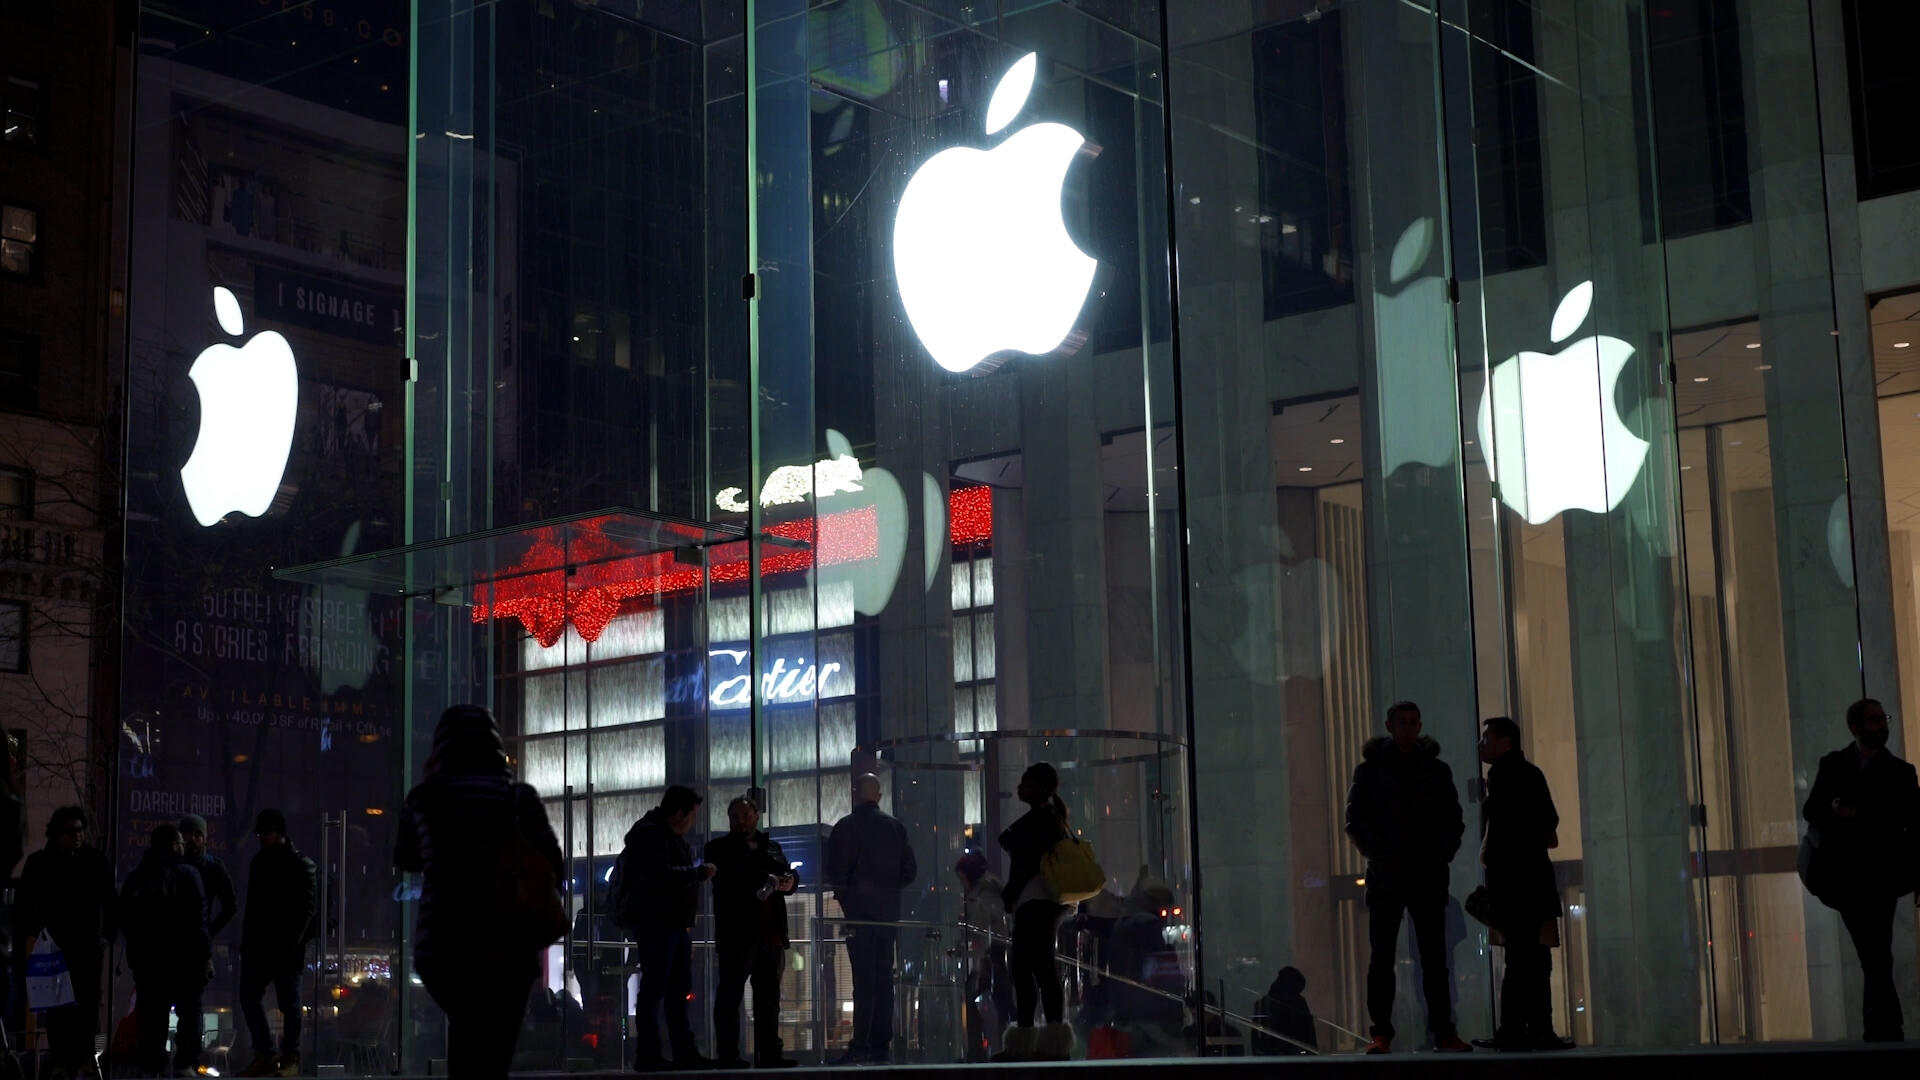 Video: Apple CEO Tim Cook testifies in court, Google to open a brick-and-mortar store